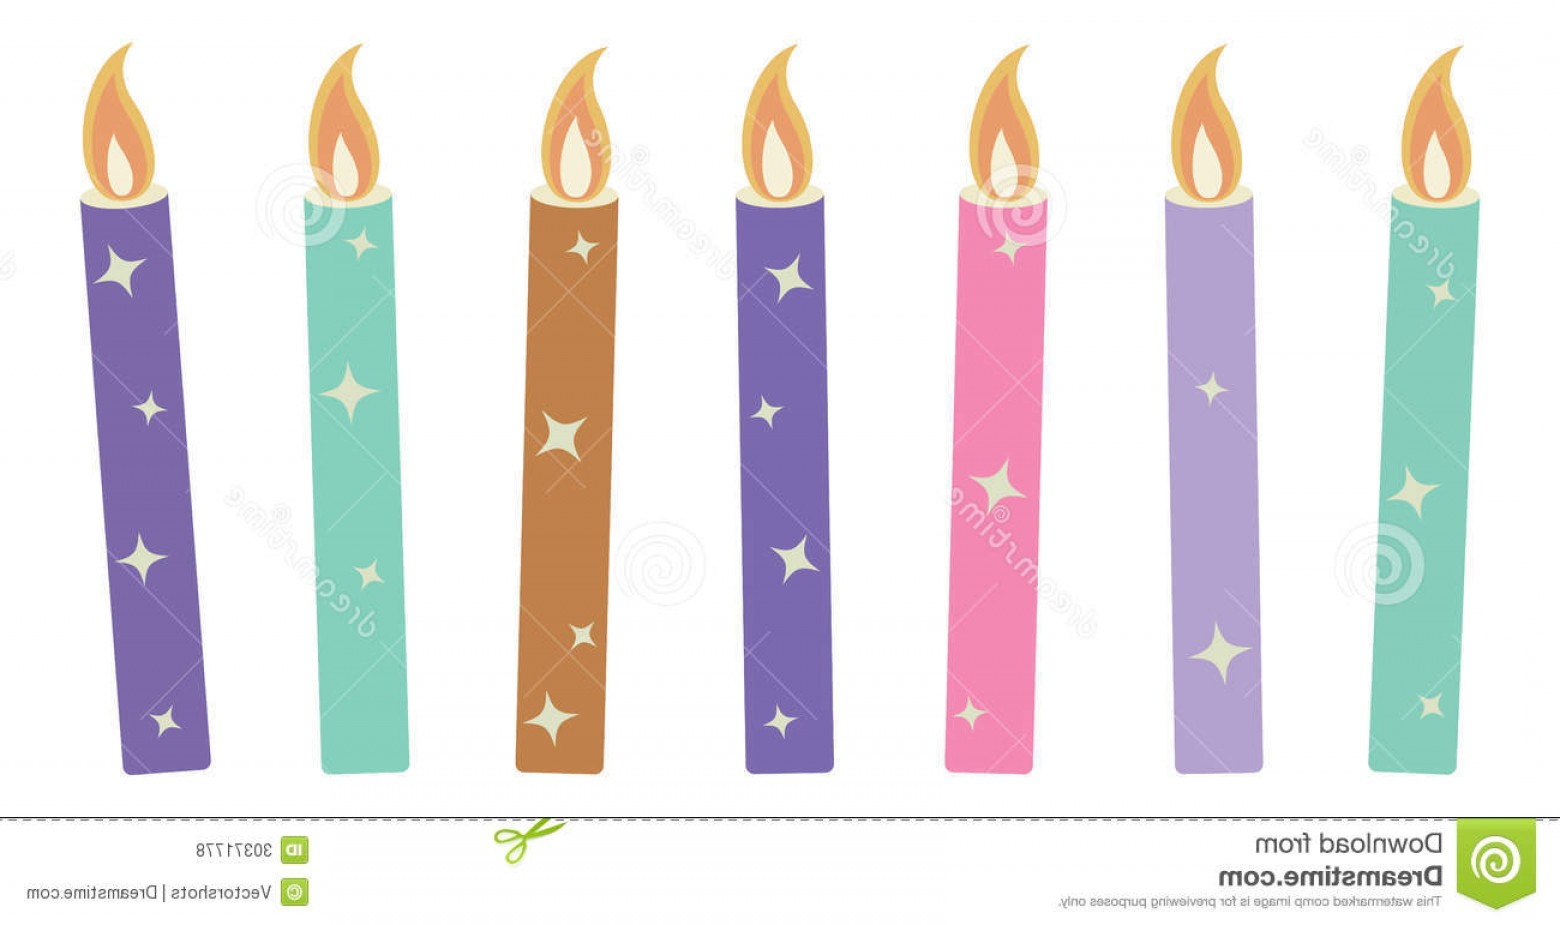 Birthday Candle Vector Art: Royalty Free Stock Photos Candles Christmas Vector Illustration Drawing Art Colorful Birthday Celebration Image